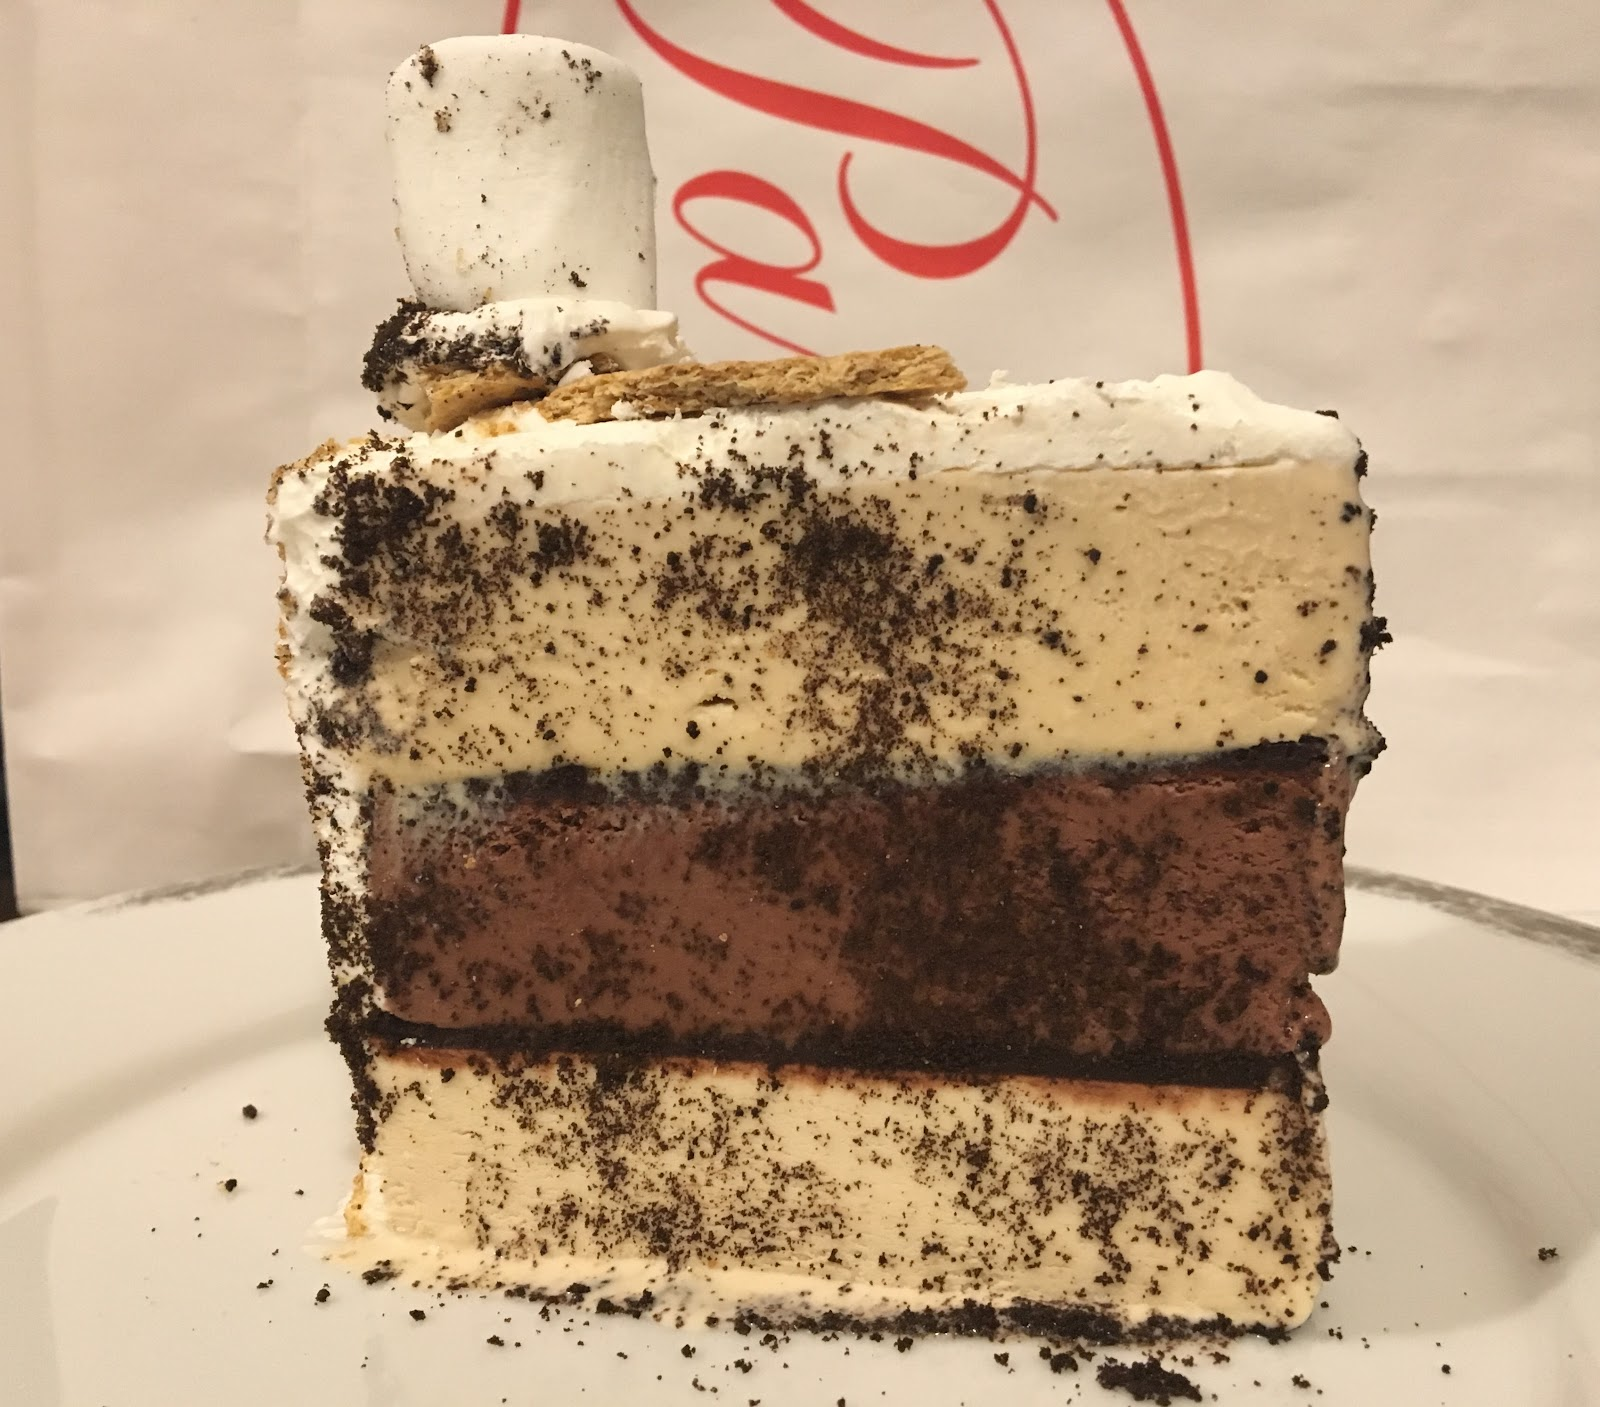 Most people are familiar with the original pistachio chocolate and strawberry cake always a classic but i prefer the insanity of the smore with layers